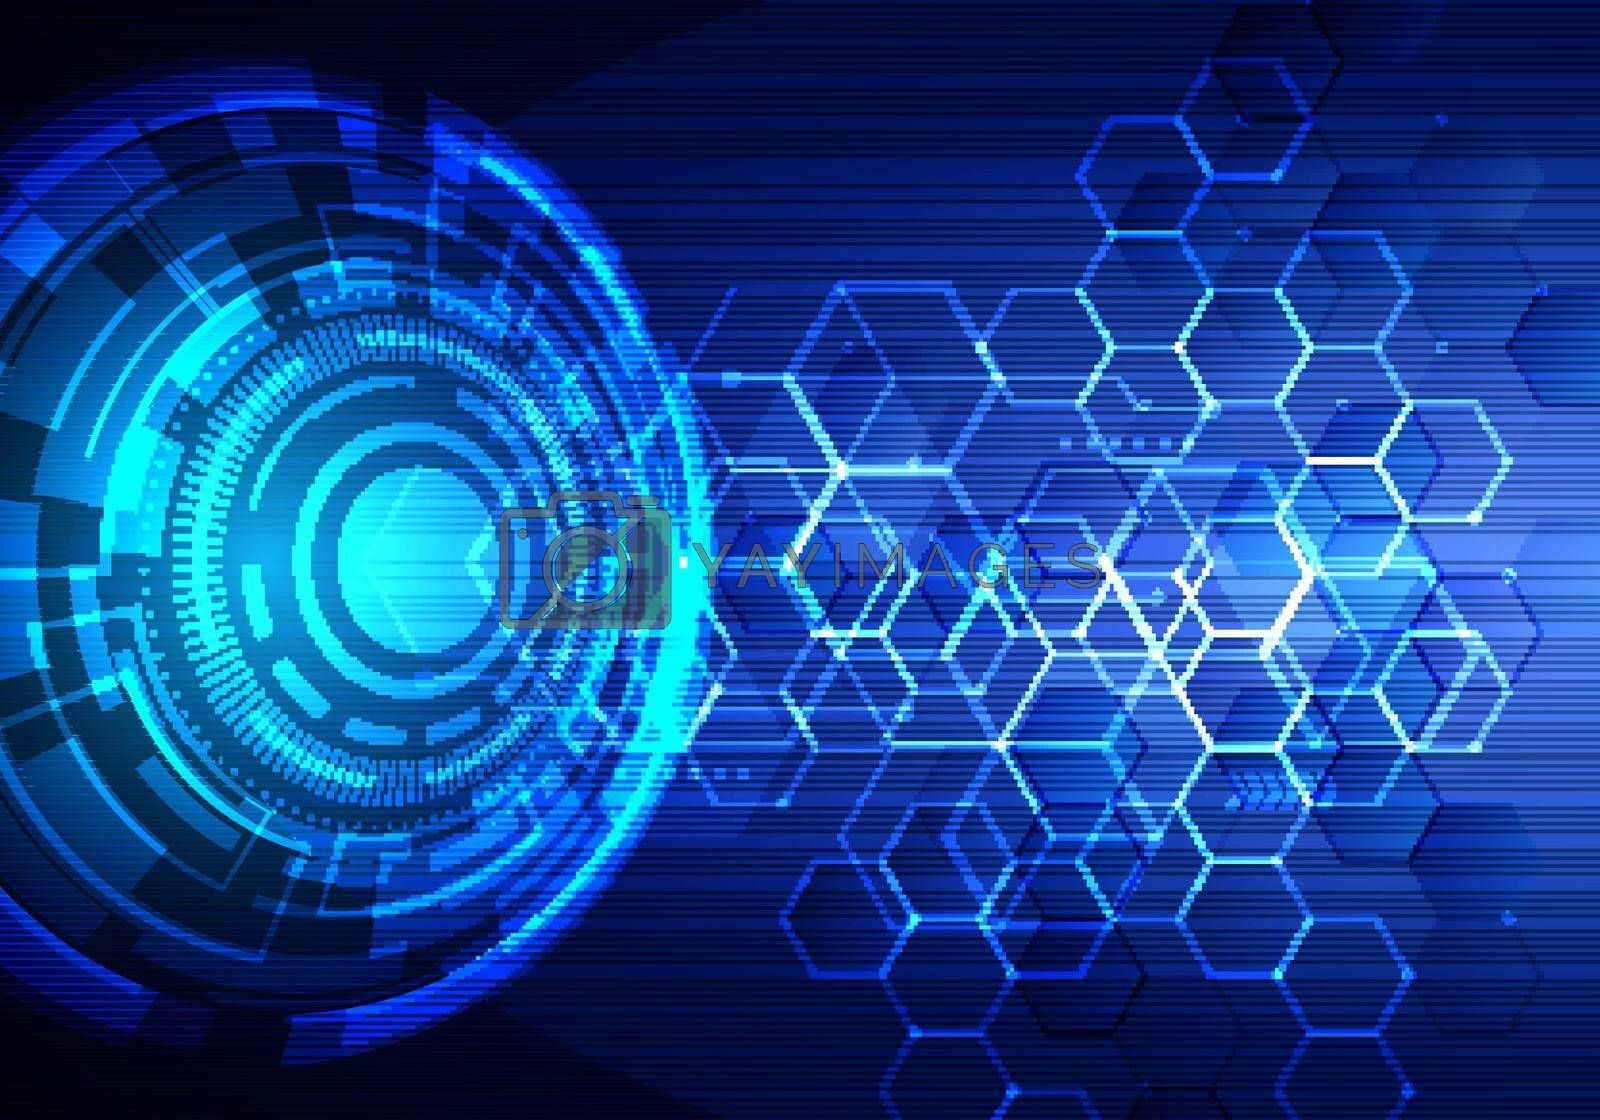 Abstract technology futuristic transfer digital data network to center concept. Blue circle internet tech background. Vector illustration